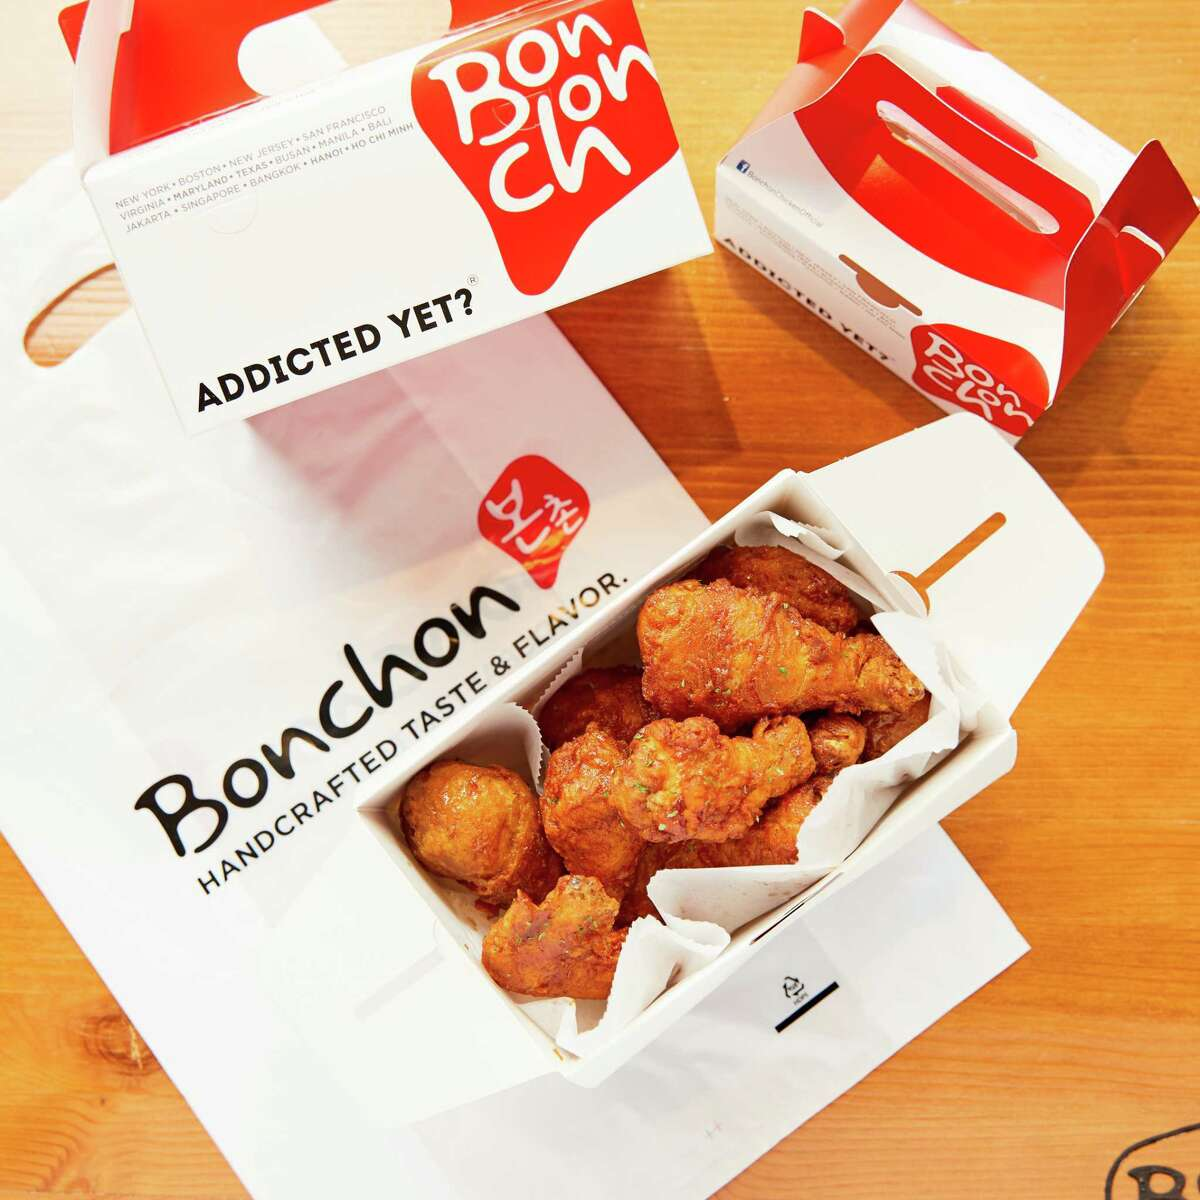 Korean fried chicken brand Bonchon opened its fourth location in the Houston area. The restaurant is on the ground floor of Central Square Midtown, at 2100 Travis St.